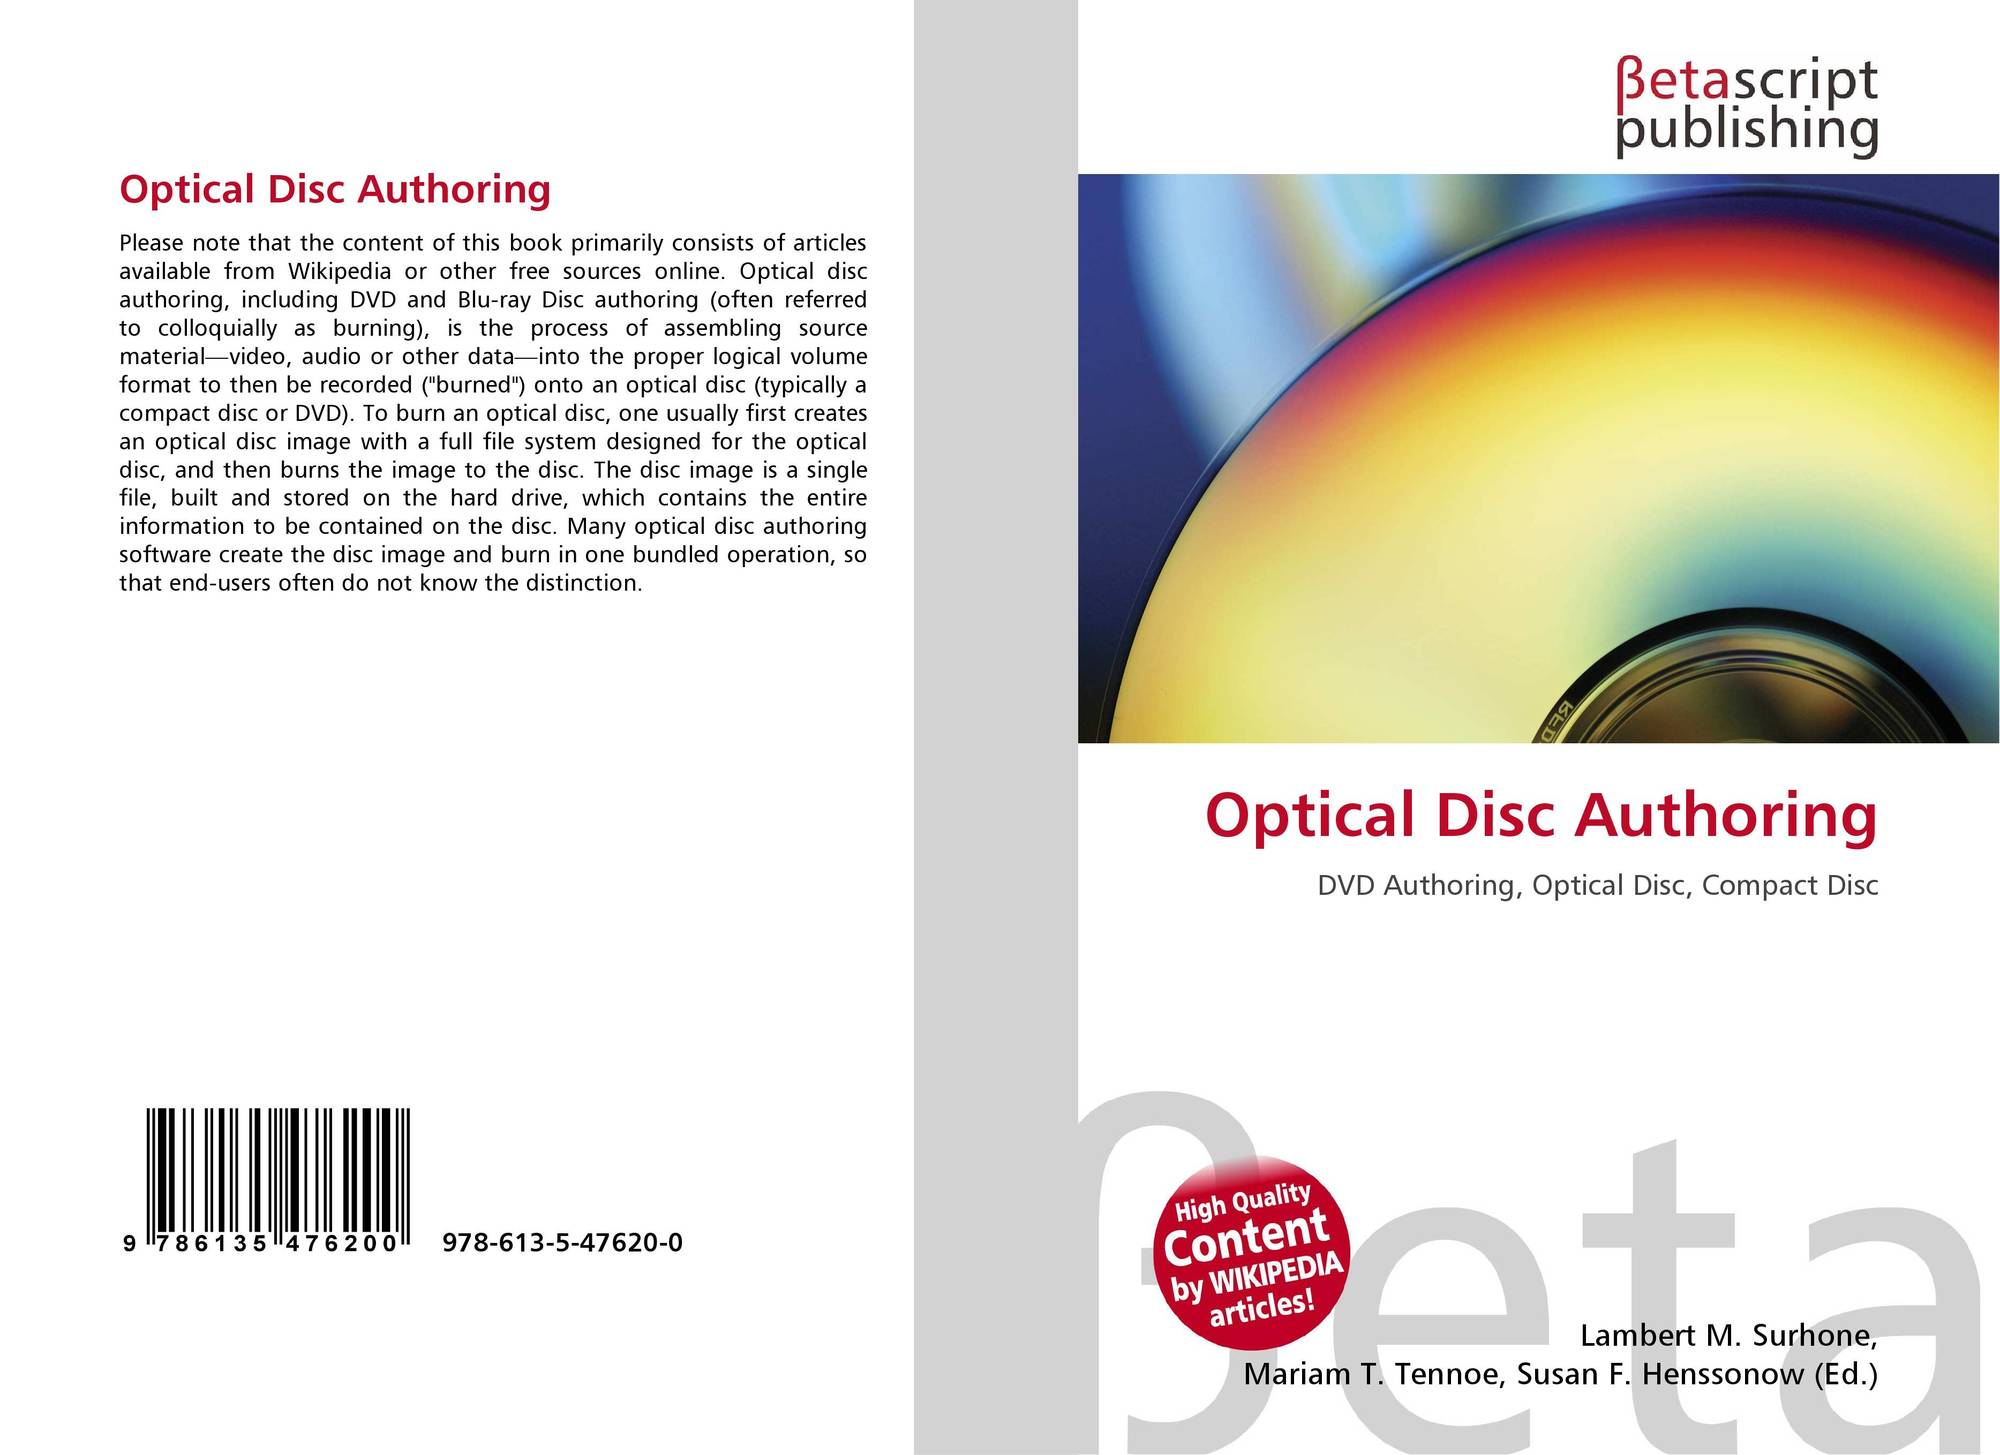 Optical Disc Authoring, 978-613-5-47620-0, 6135476203 ,9786135476200